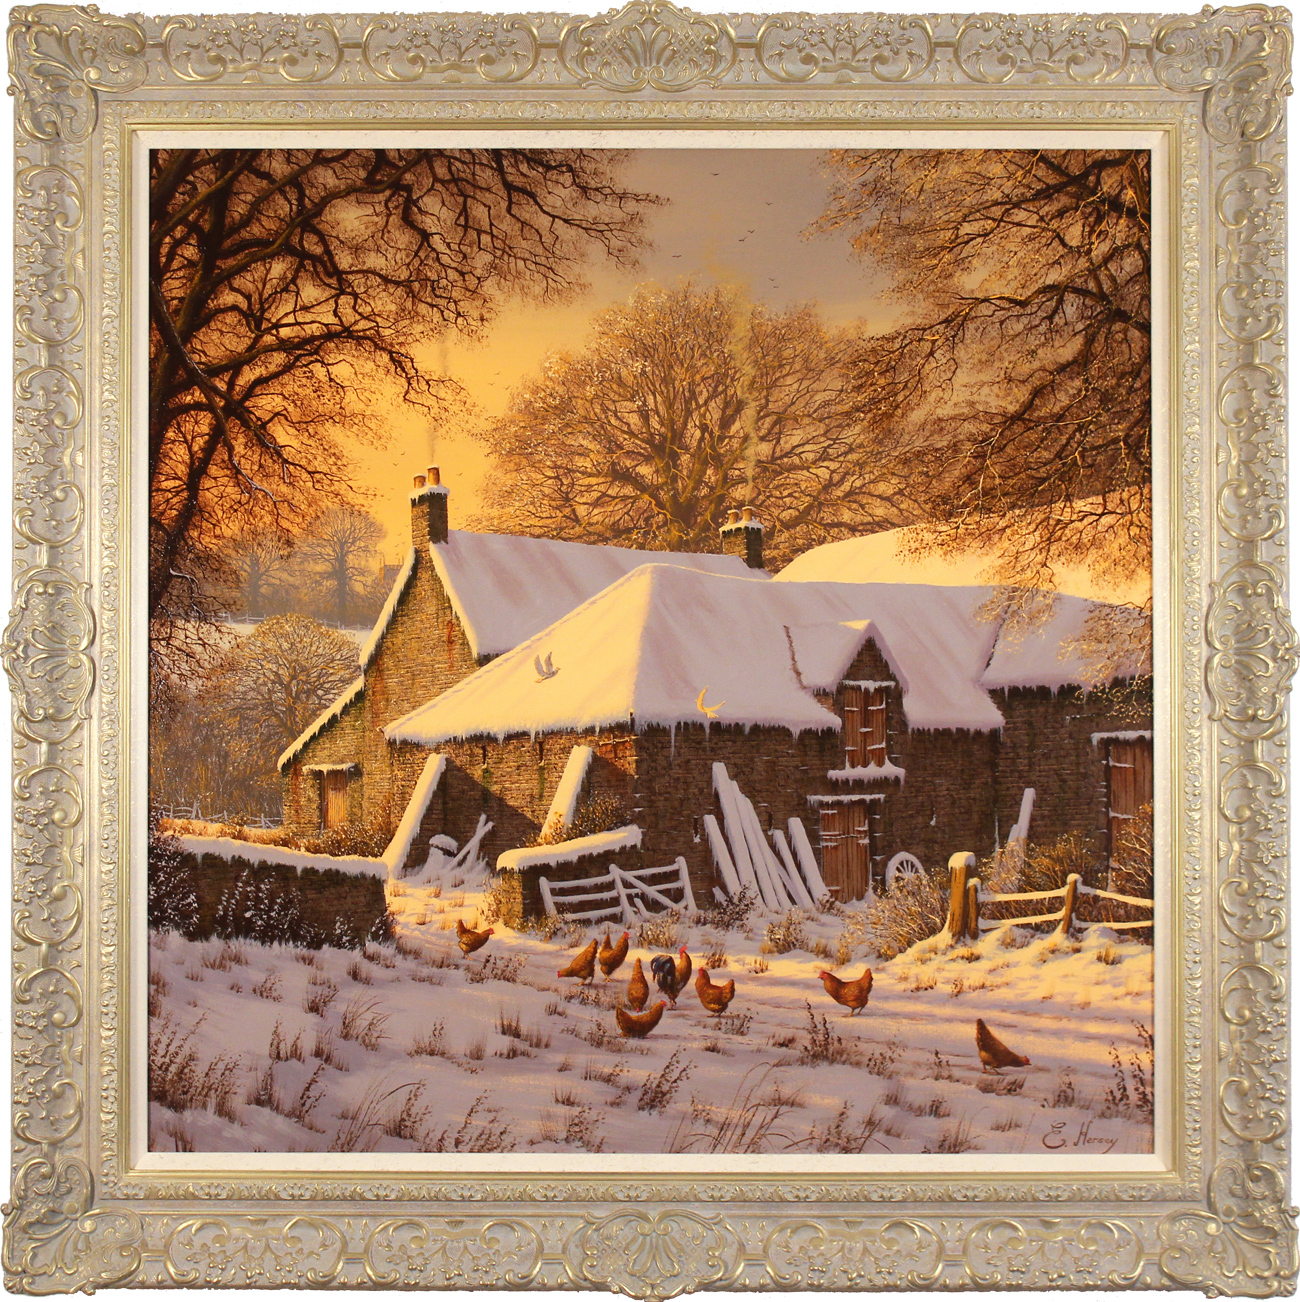 Edward Hersey, Original oil painting on canvas, Winter Warmth, click to enlarge